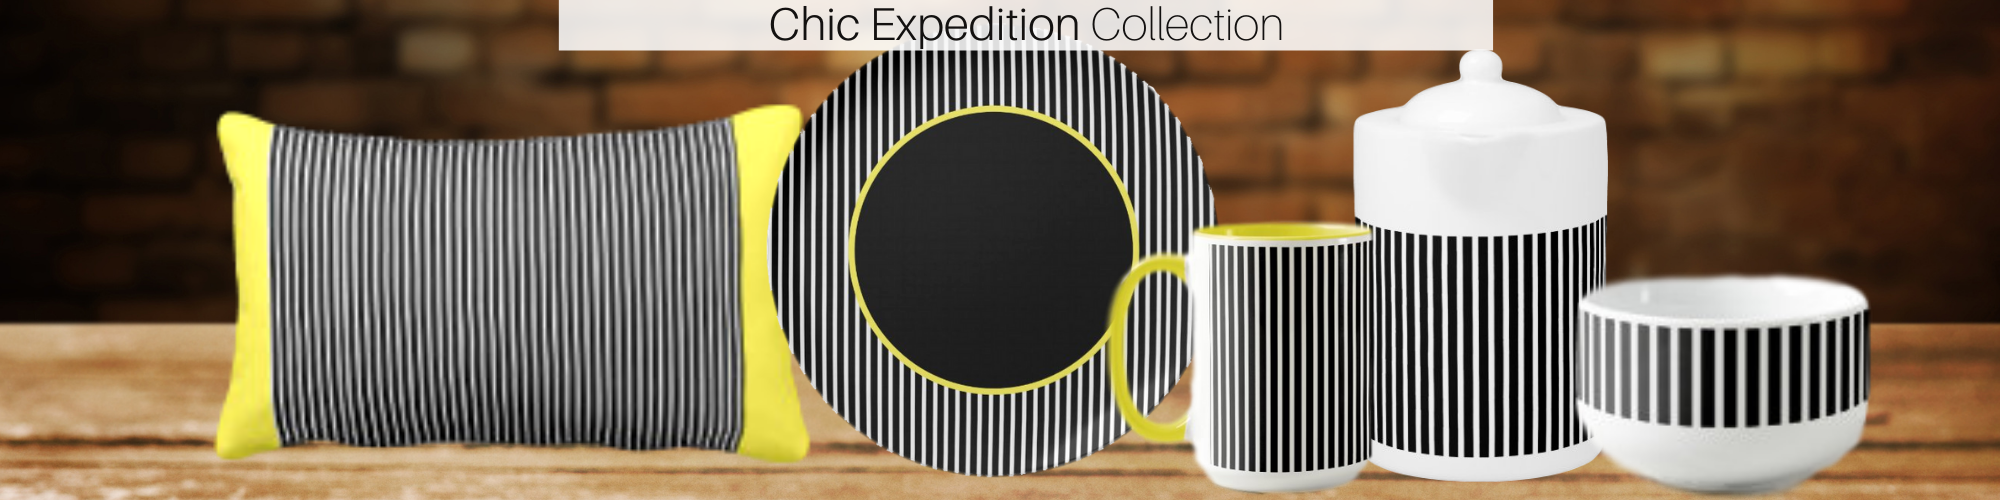 Chic Expedition Collection by KaySahai Designs